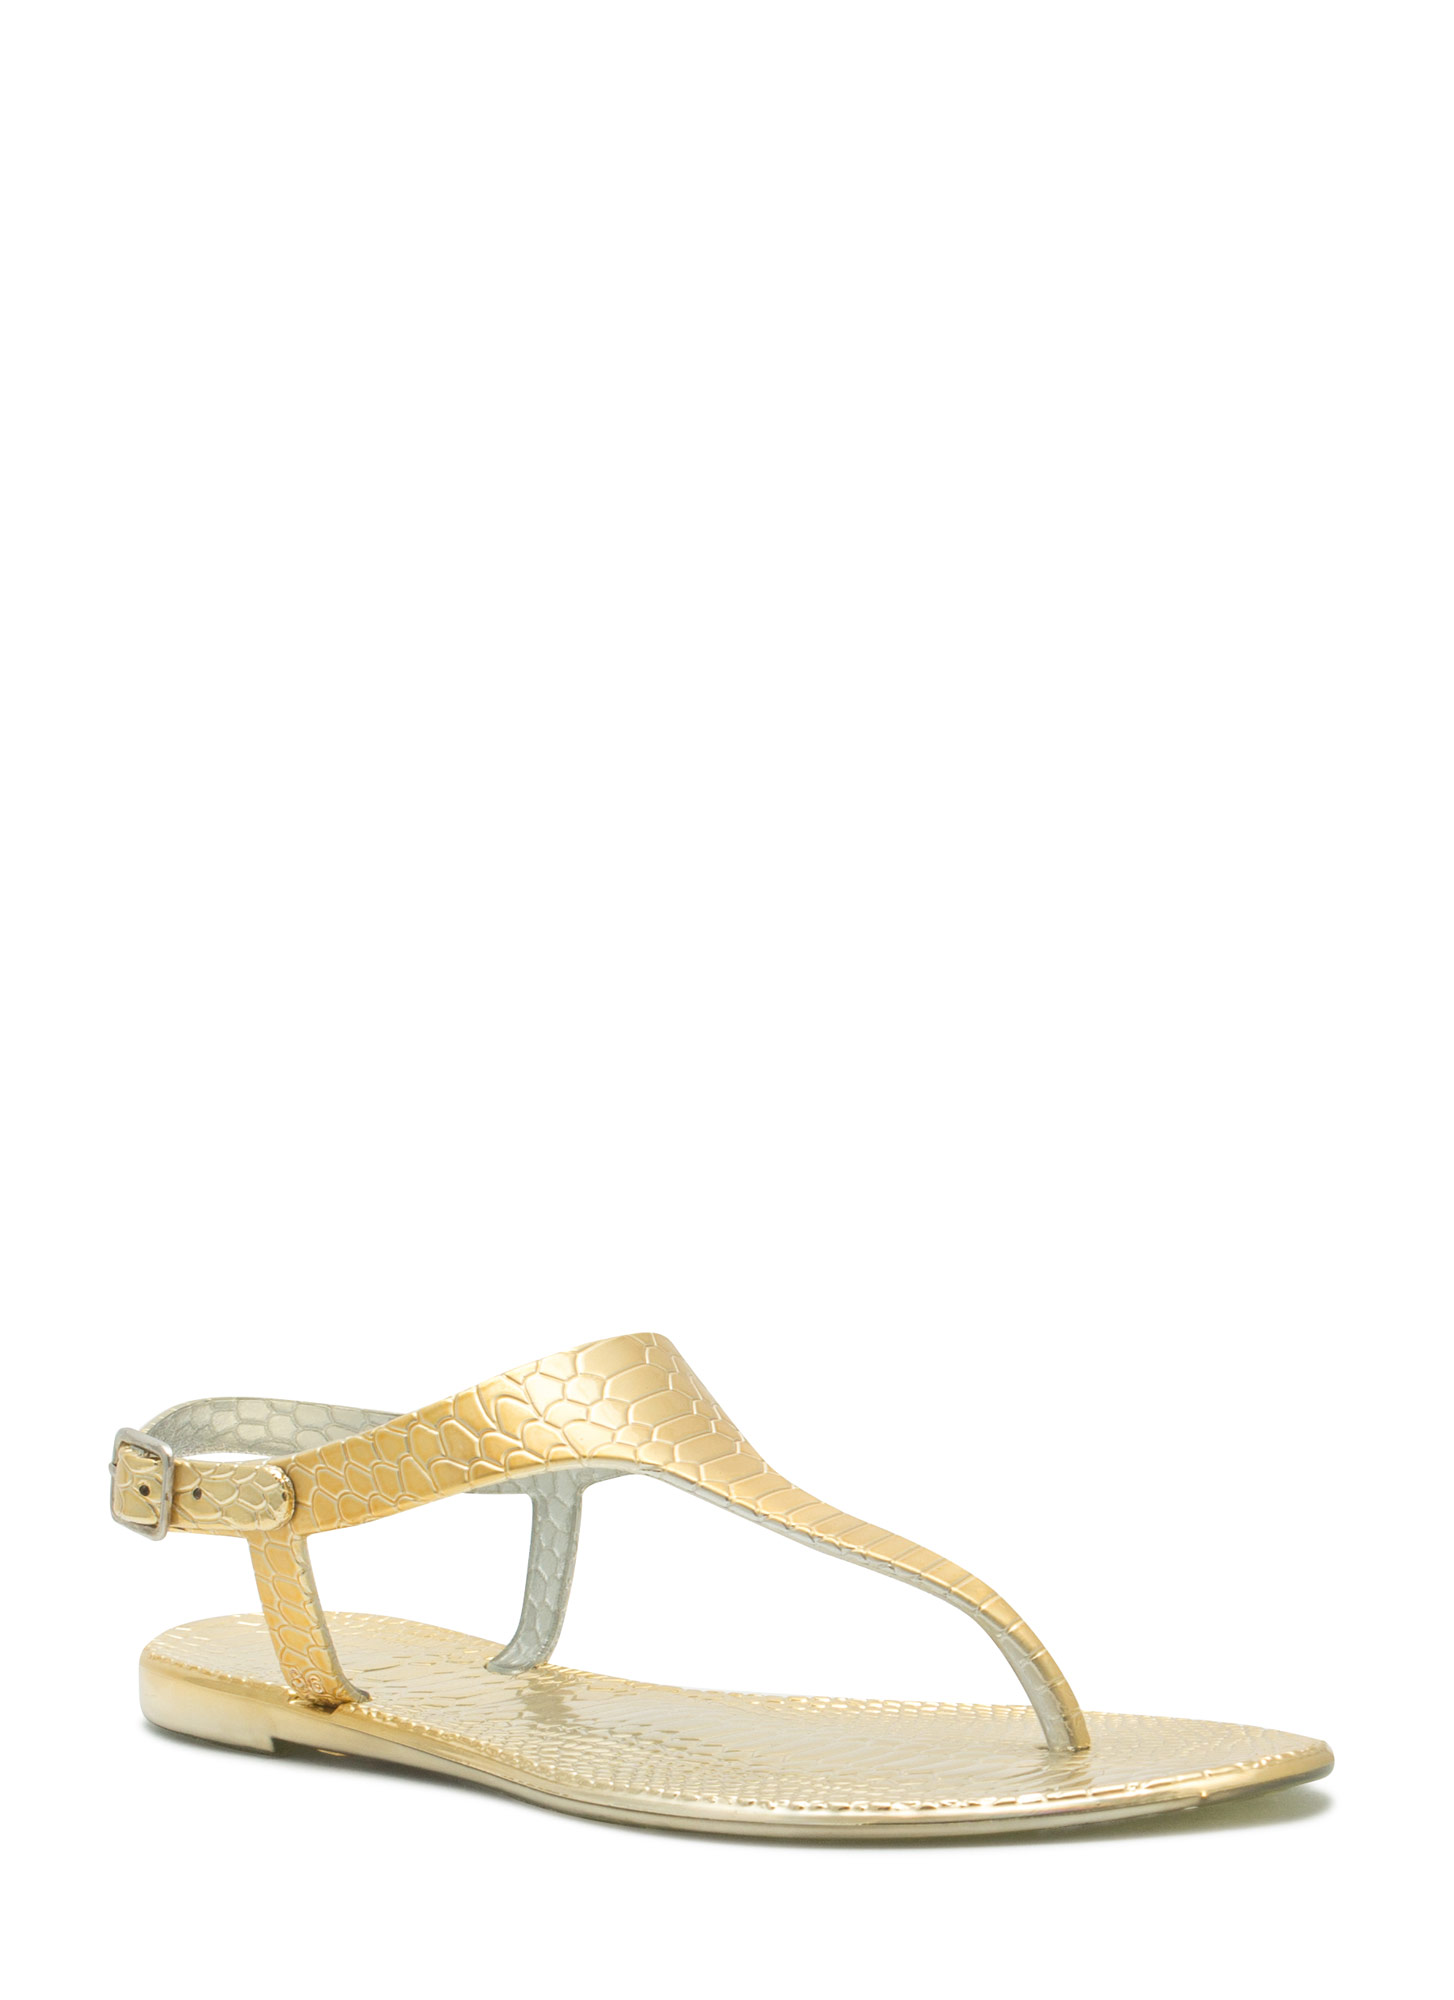 Reptile Textured Jelly Thong Sandals GOLD